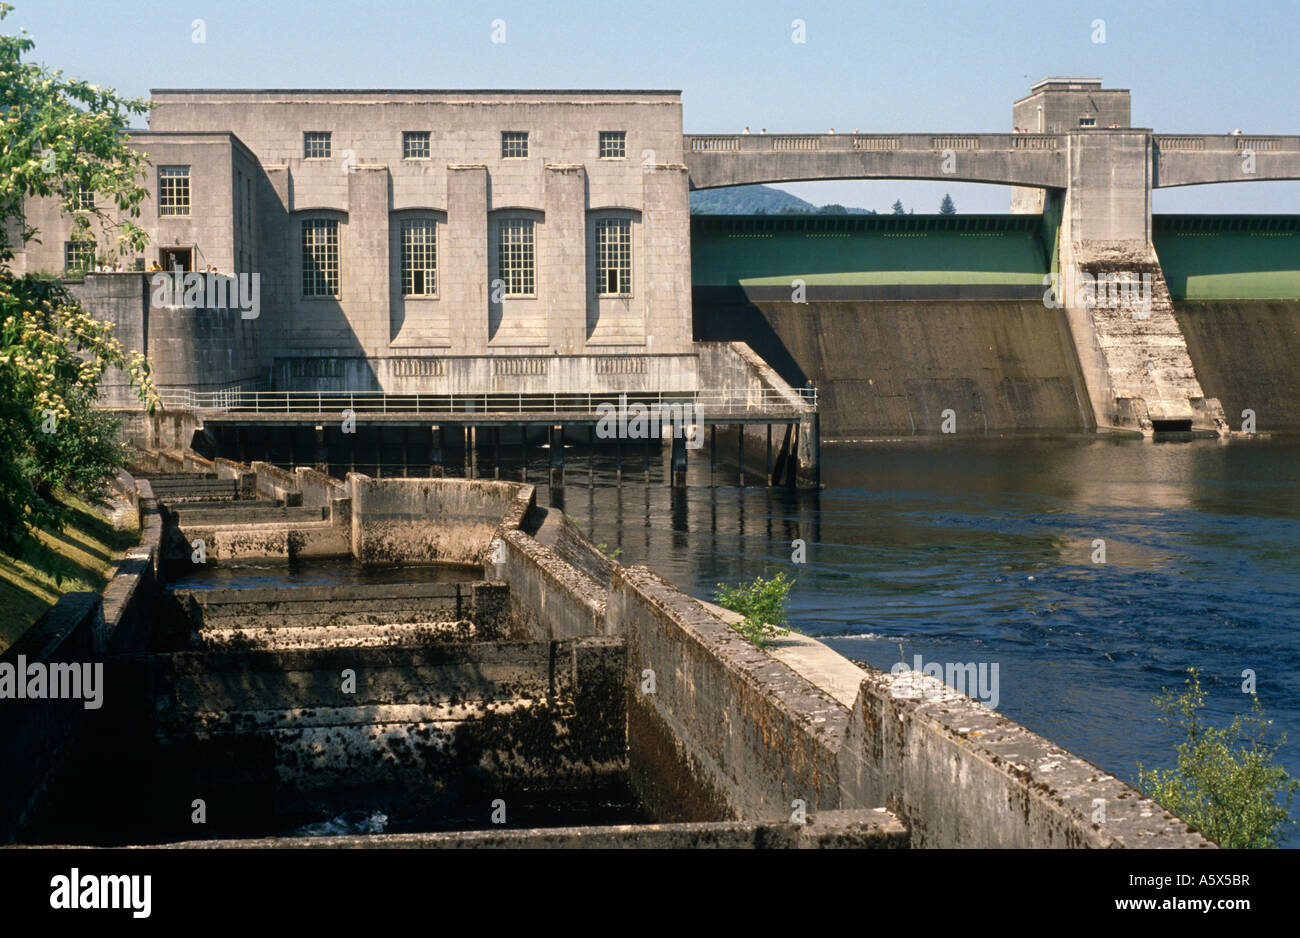 Salmon Fish Ladder Dam And Hydro Electric Power Station